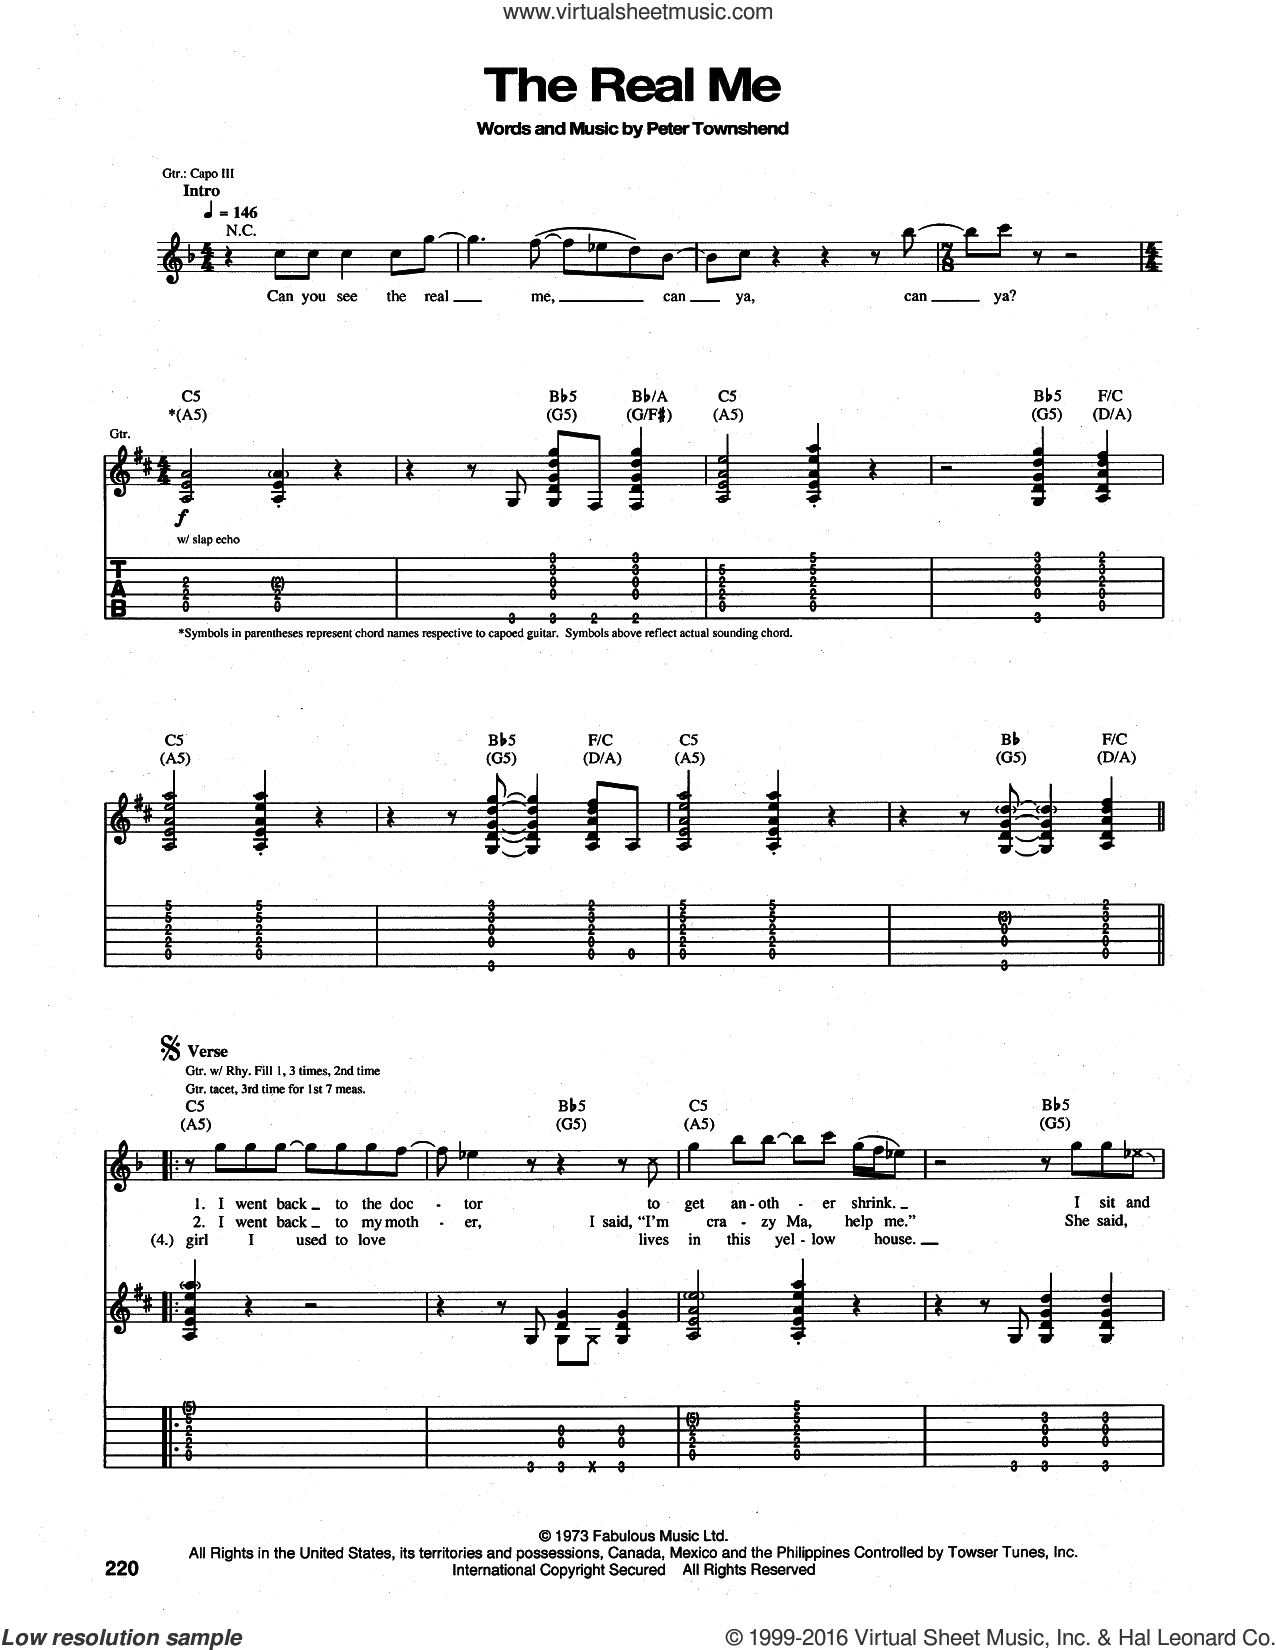 The Real Me sheet music for guitar (tablature) by Pete Townshend